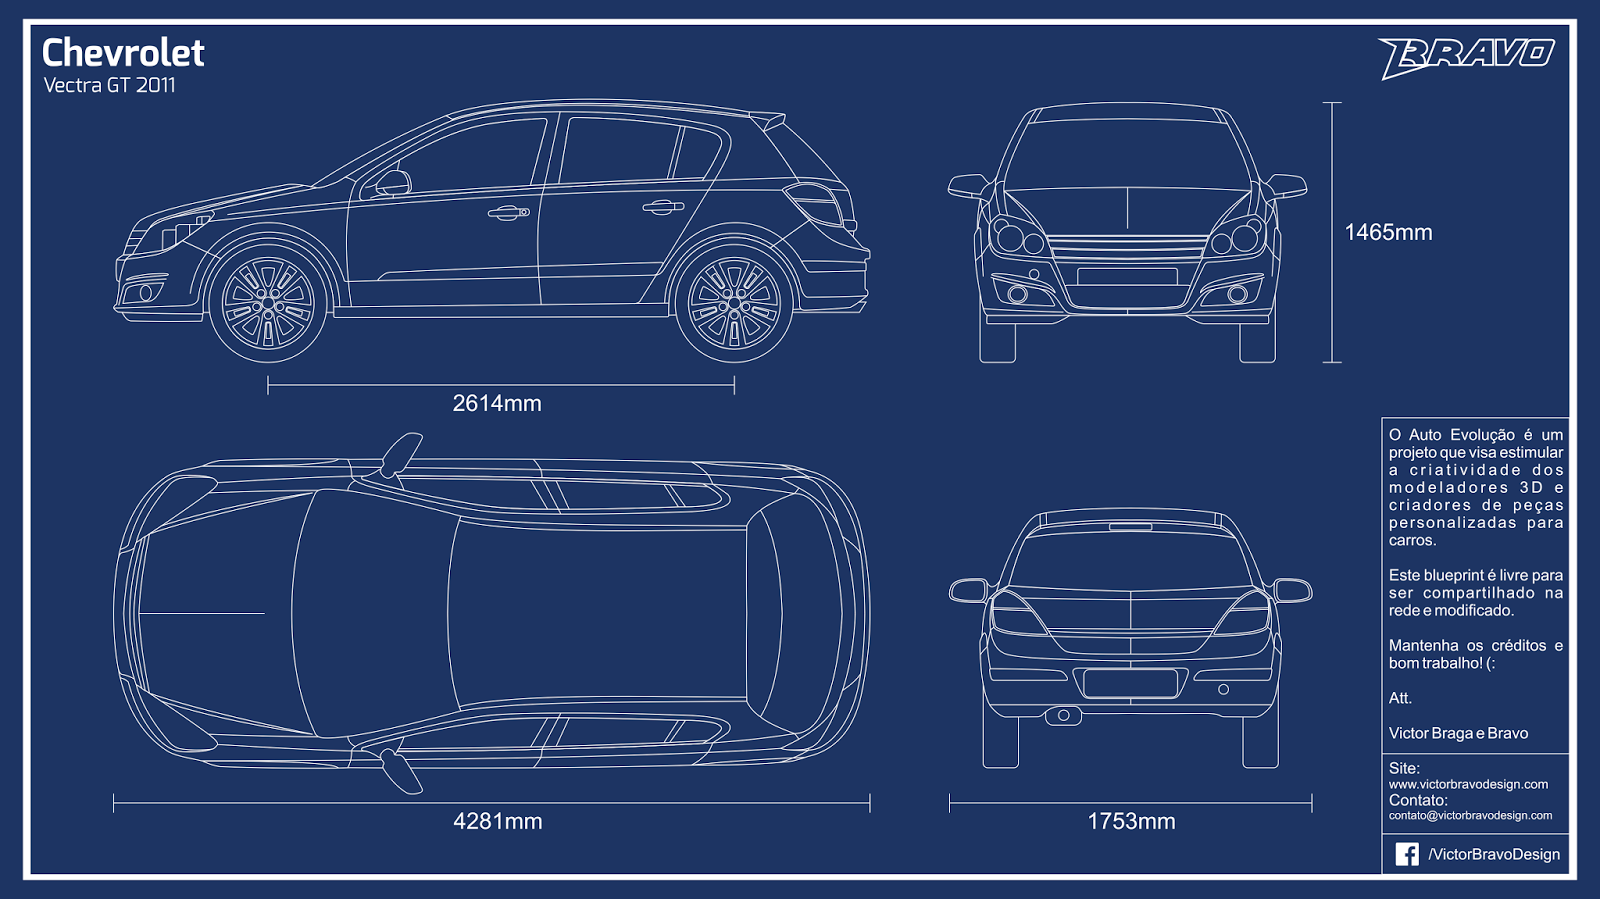 Imagem do blueprint do Chevrolet Vectra GT 2011